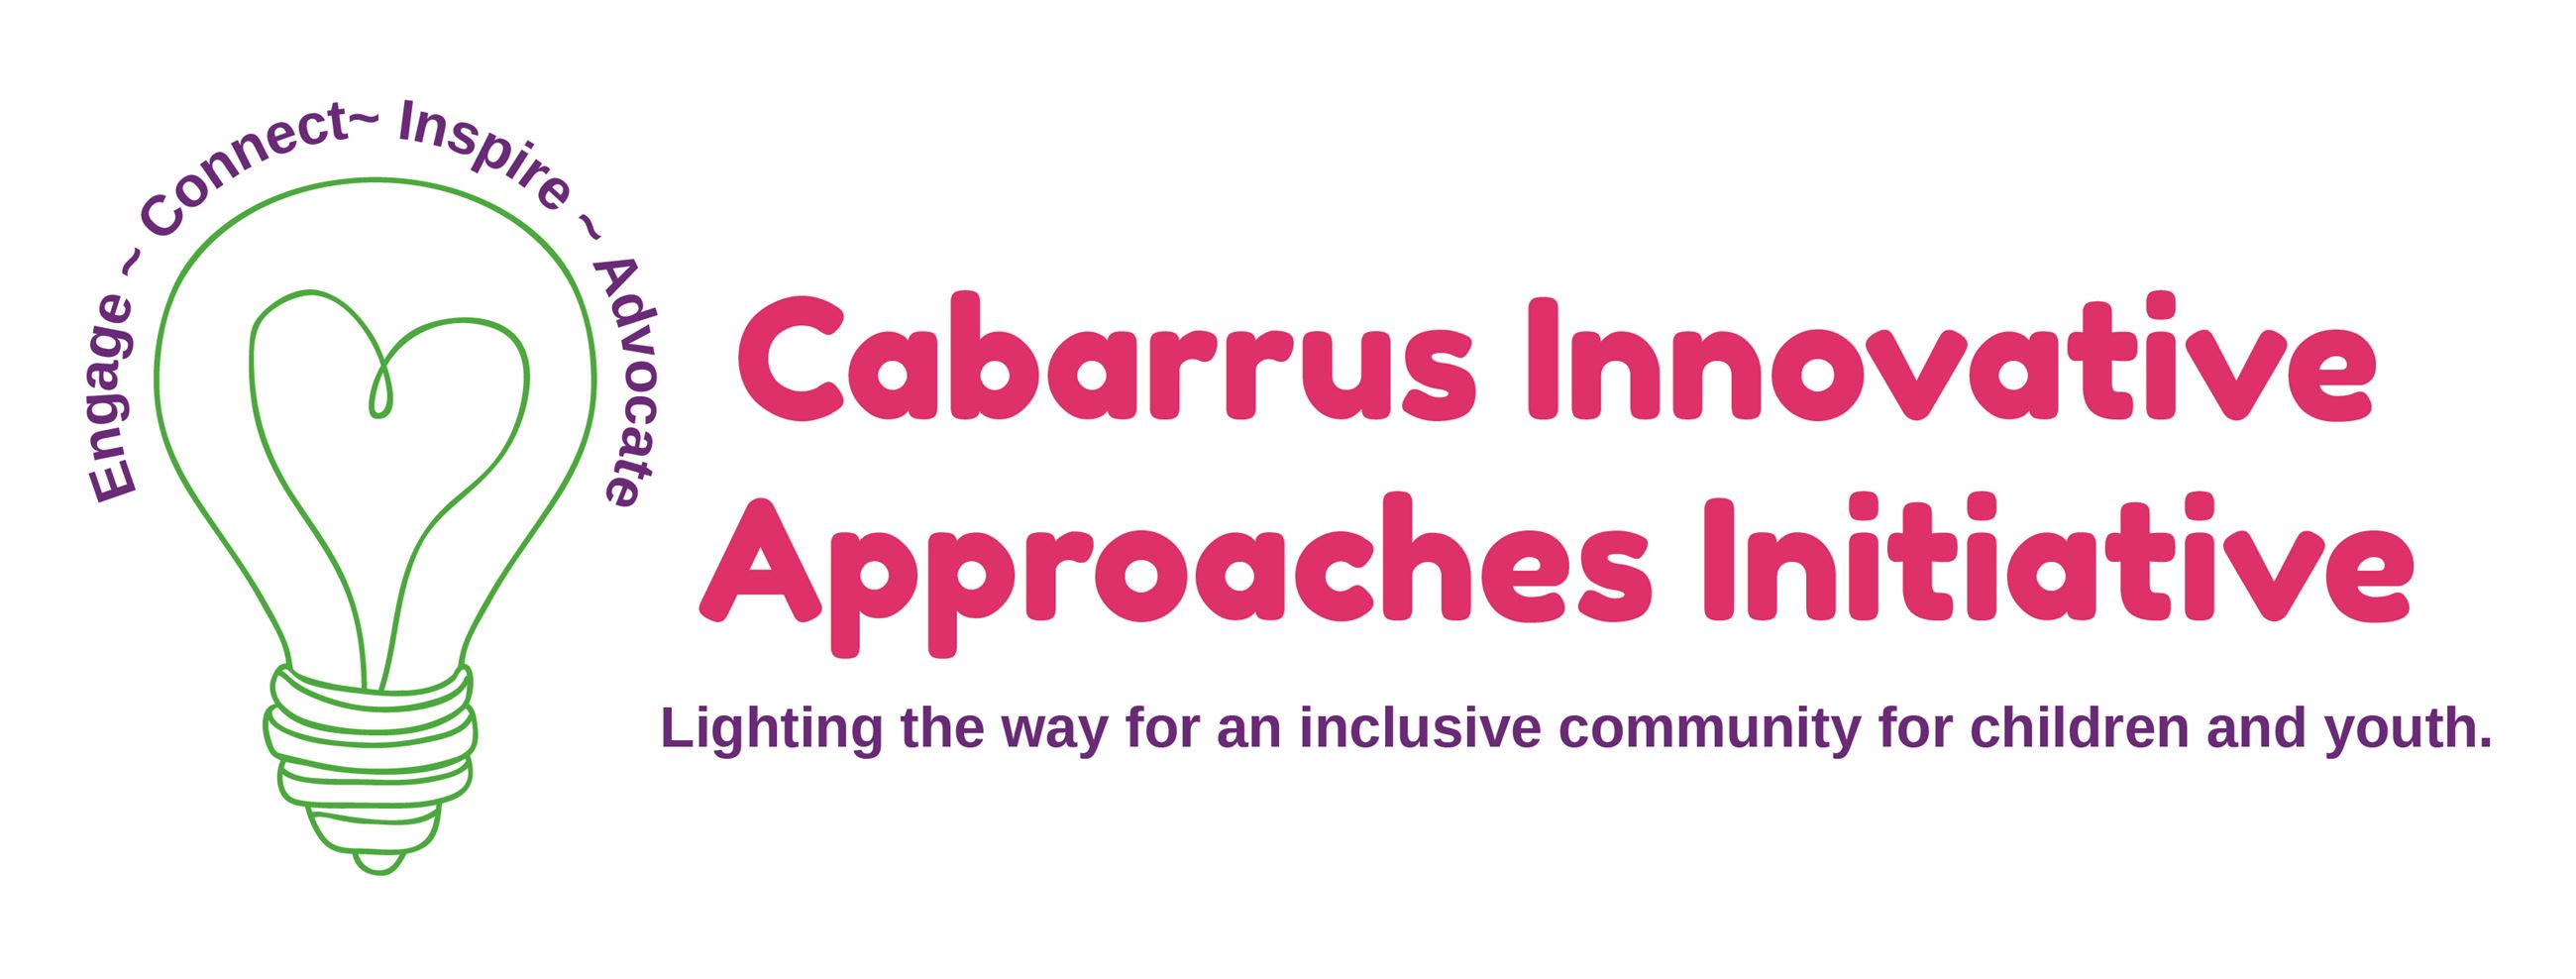 FINAL IA CABARRUS LOGO